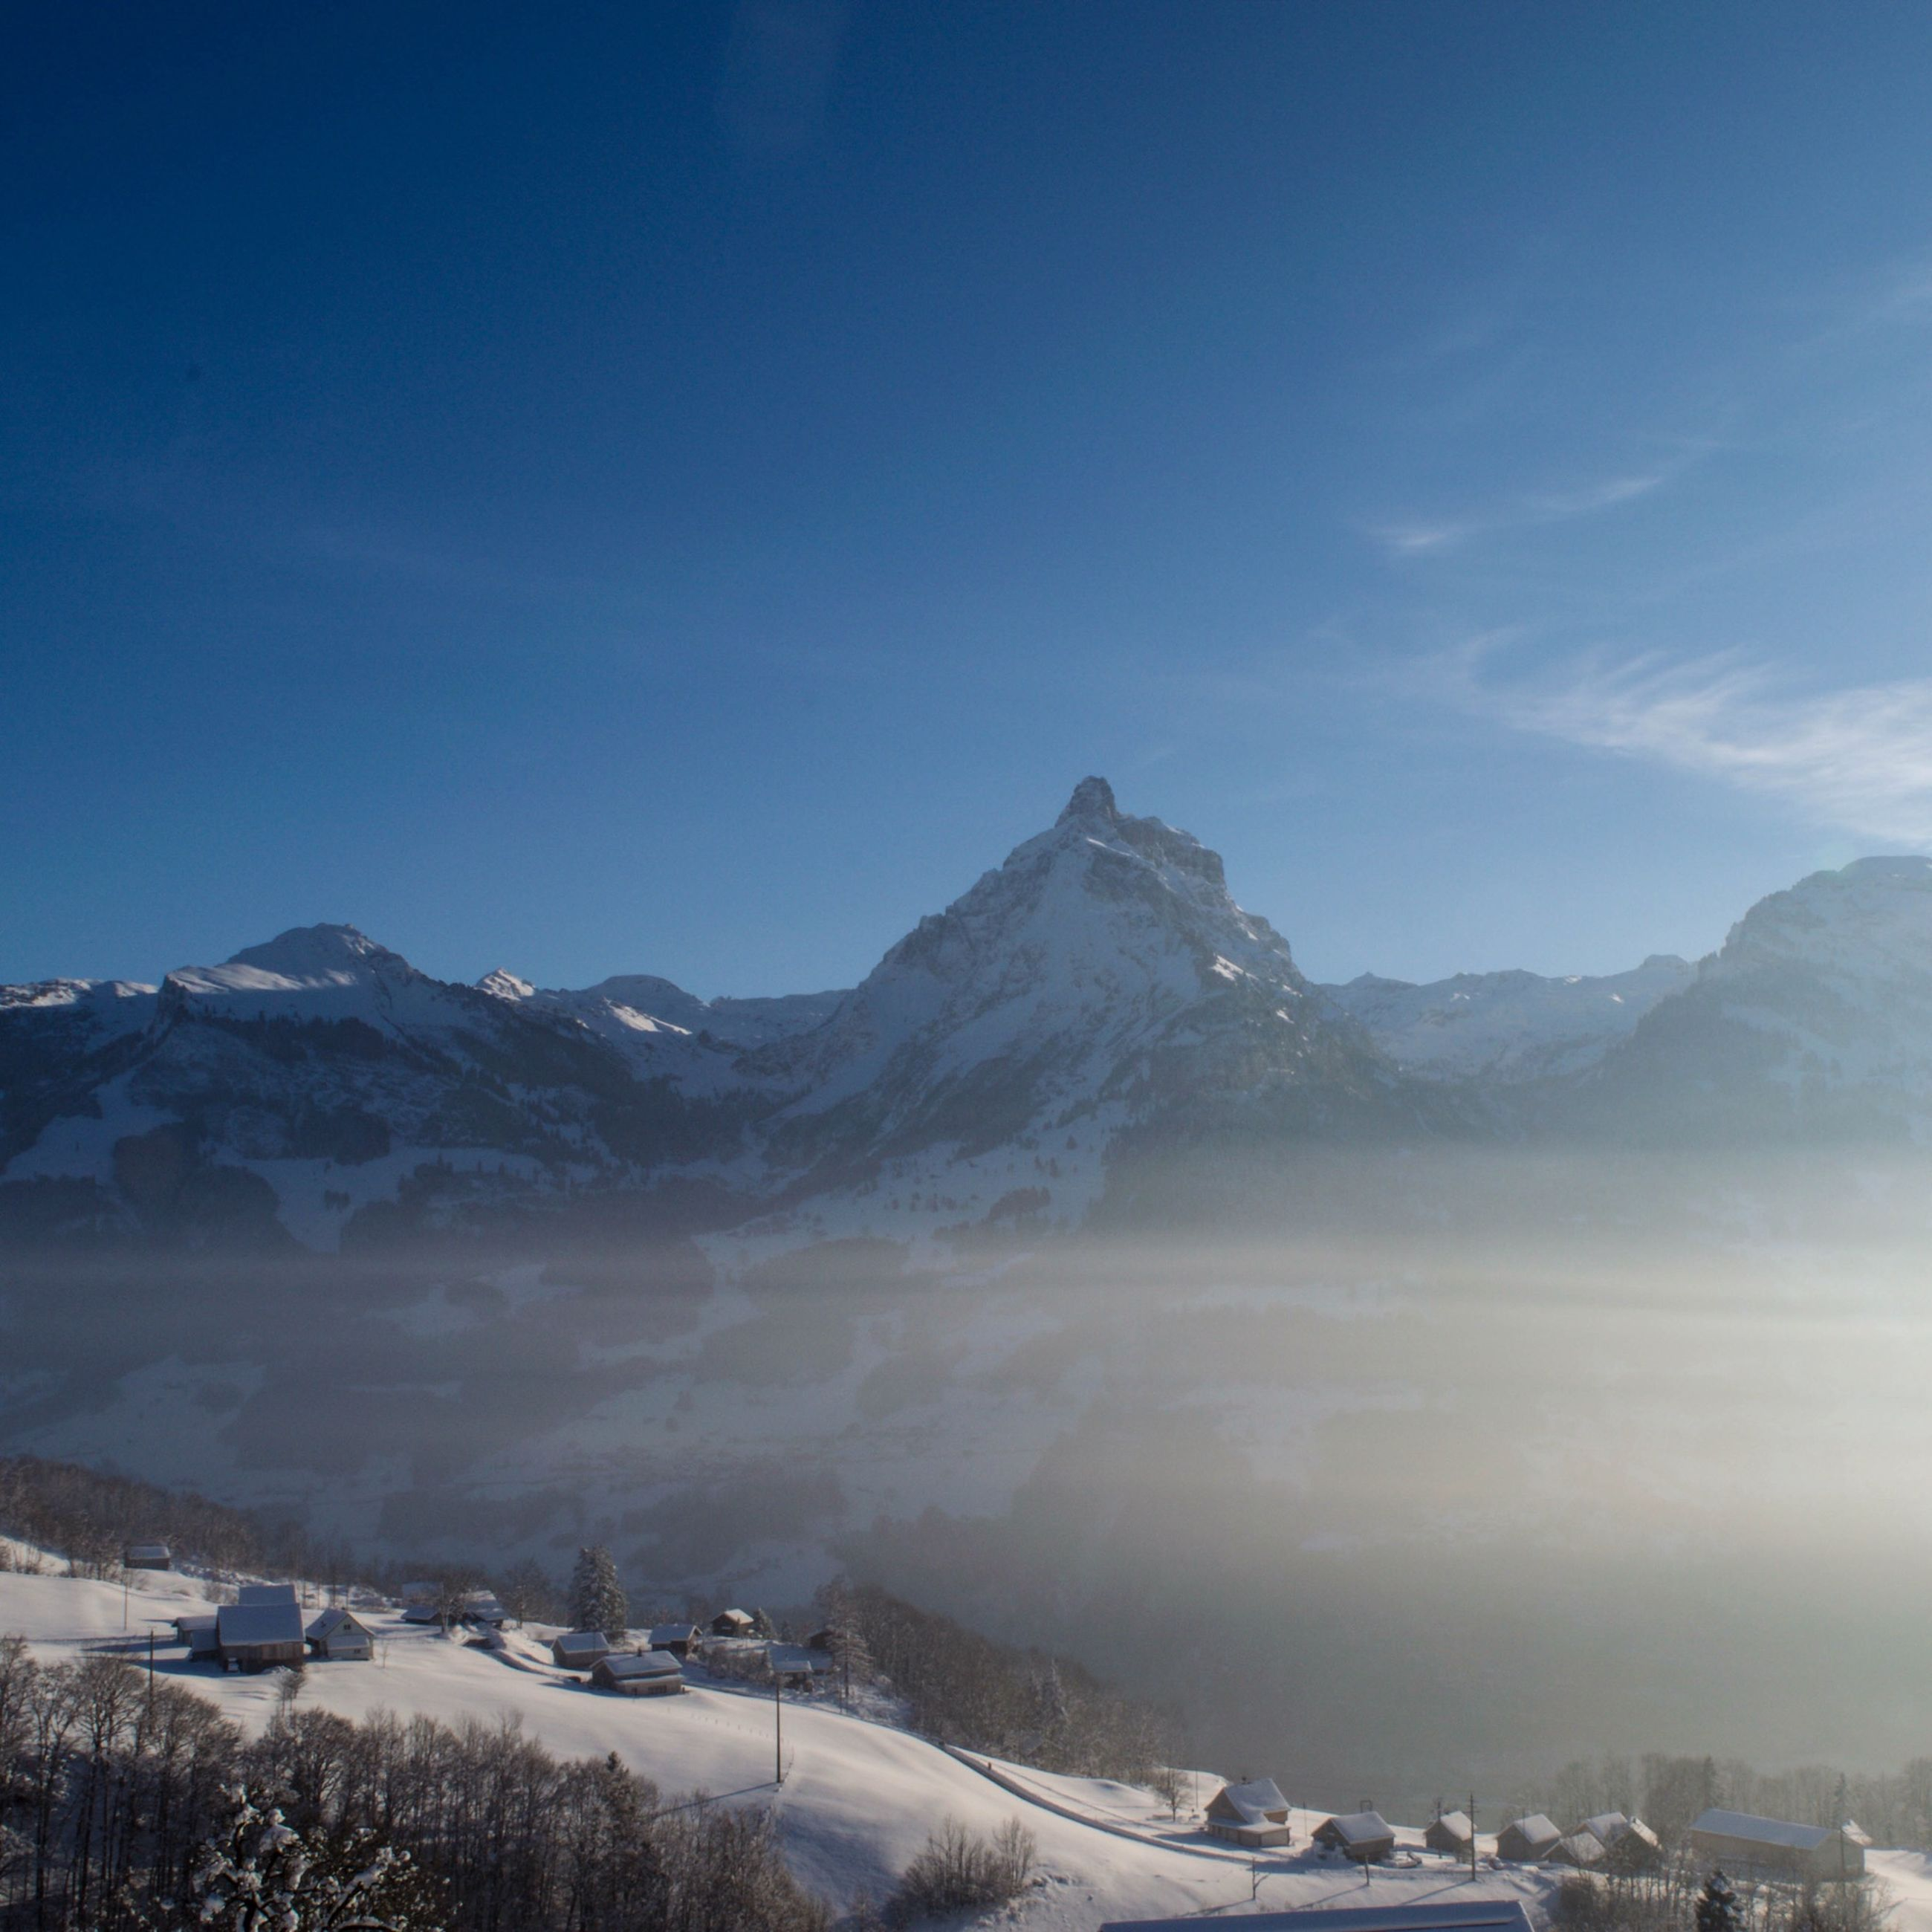 mountain, snow, winter, cold temperature, mountain range, snowcapped mountain, season, scenics, landscape, tranquil scene, beauty in nature, tranquility, nature, clear sky, weather, covering, sky, blue, building exterior, copy space